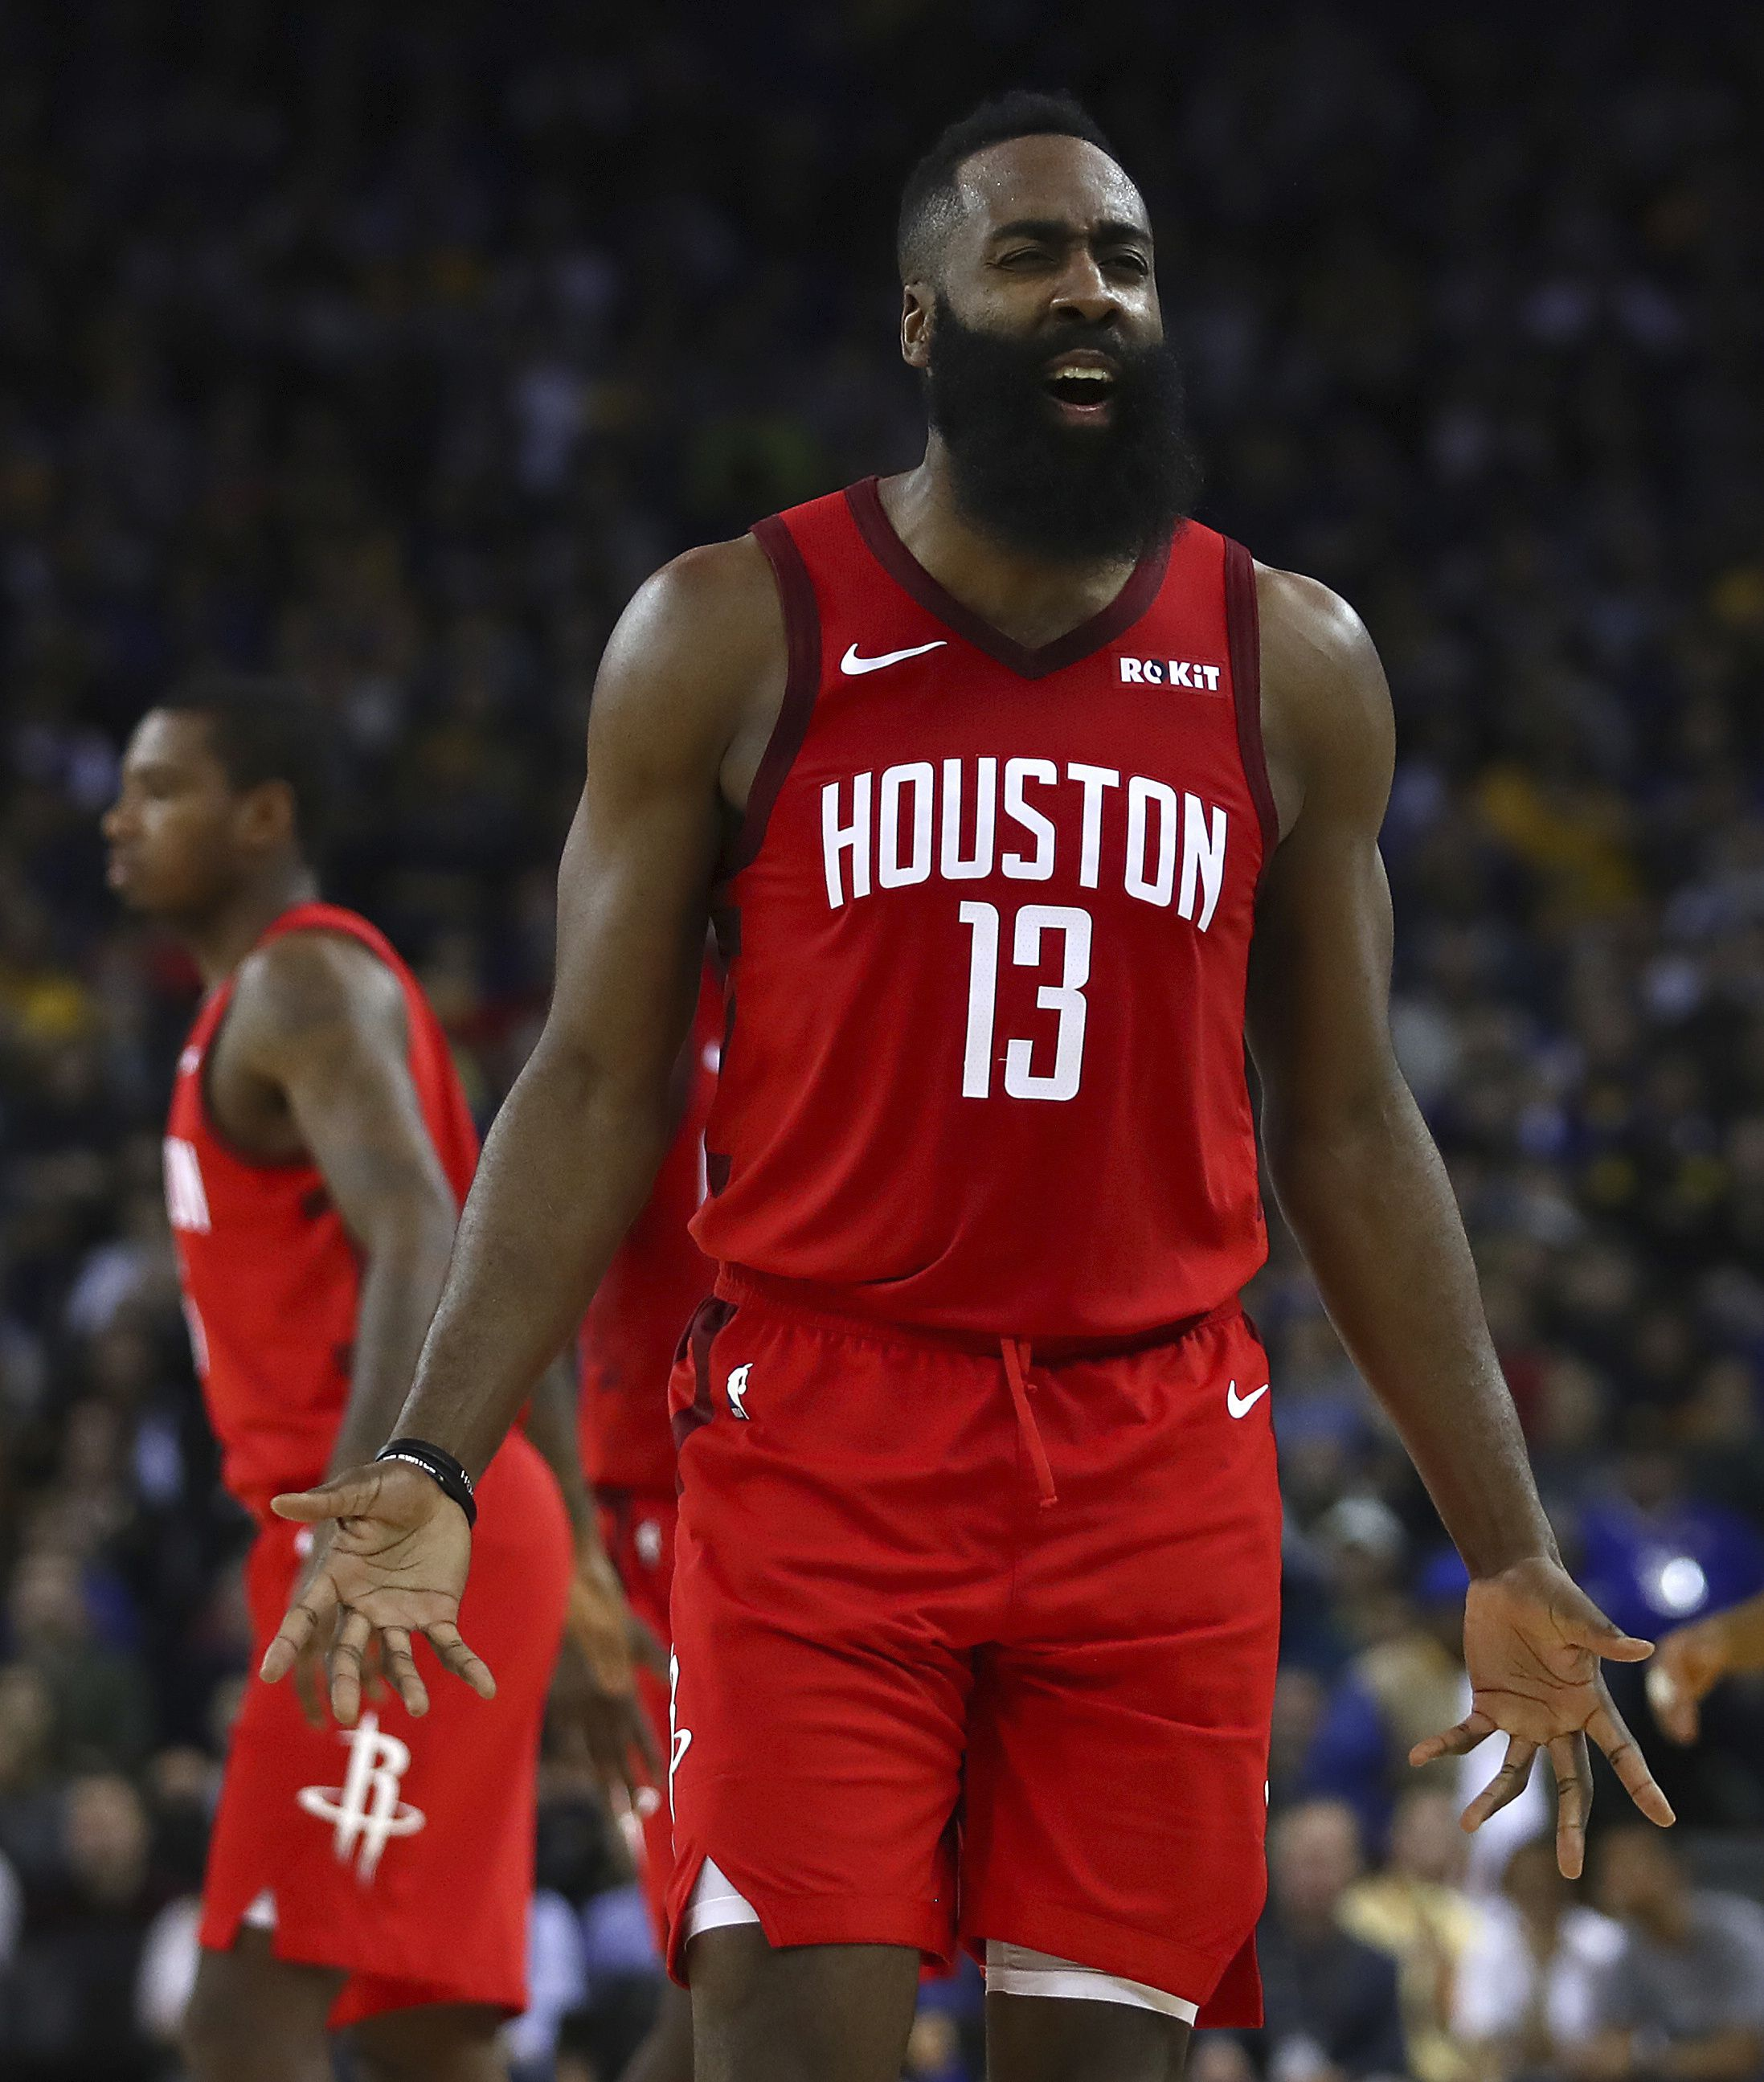 ecb0e3c03b3f Is James Harden the most unstoppable player of this generation  - The  Boston Globe